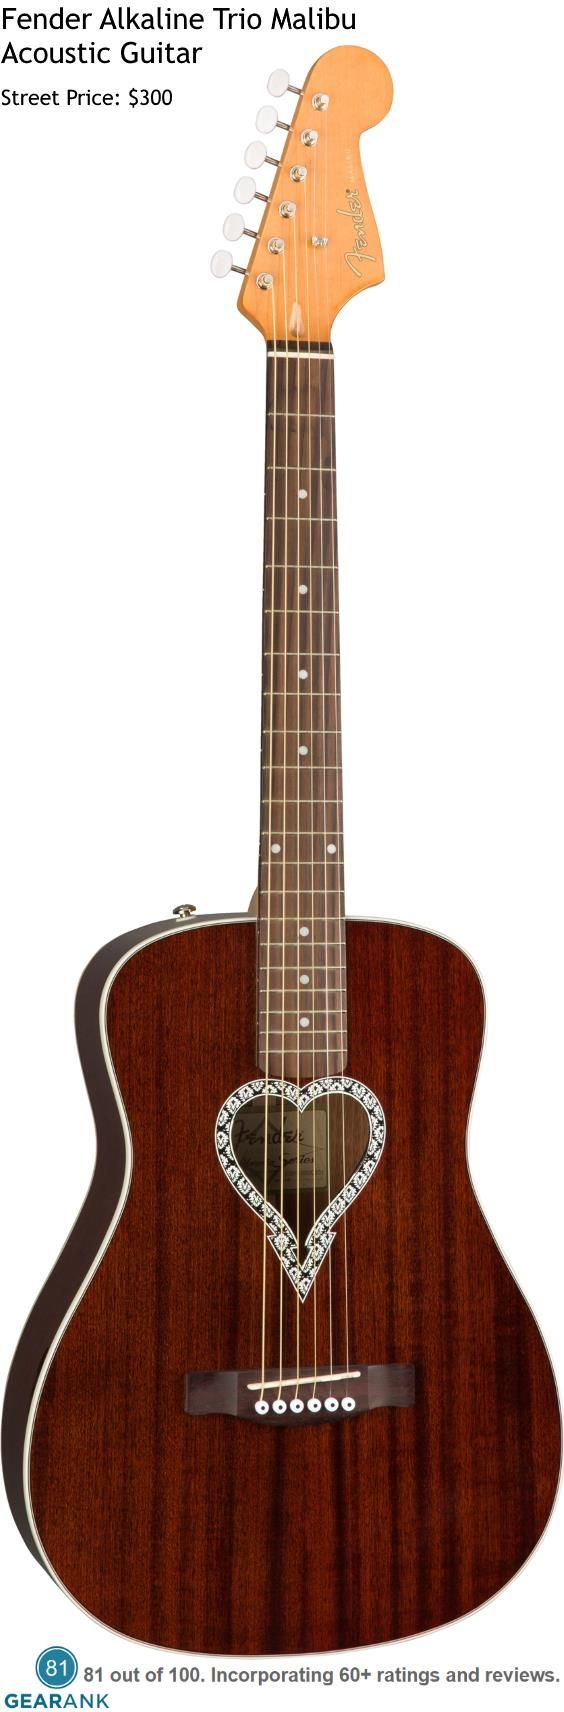 Fender Alkaline Trio Malibu. Chicago punks Alkaline Trio jumped in on the design of what must be one of Fender's most distinctive acoustic guitars ever, Street Price: $300. For a detailed guide to acoustic guitars see https://www.gearank.com/guides/acoustic-guitars